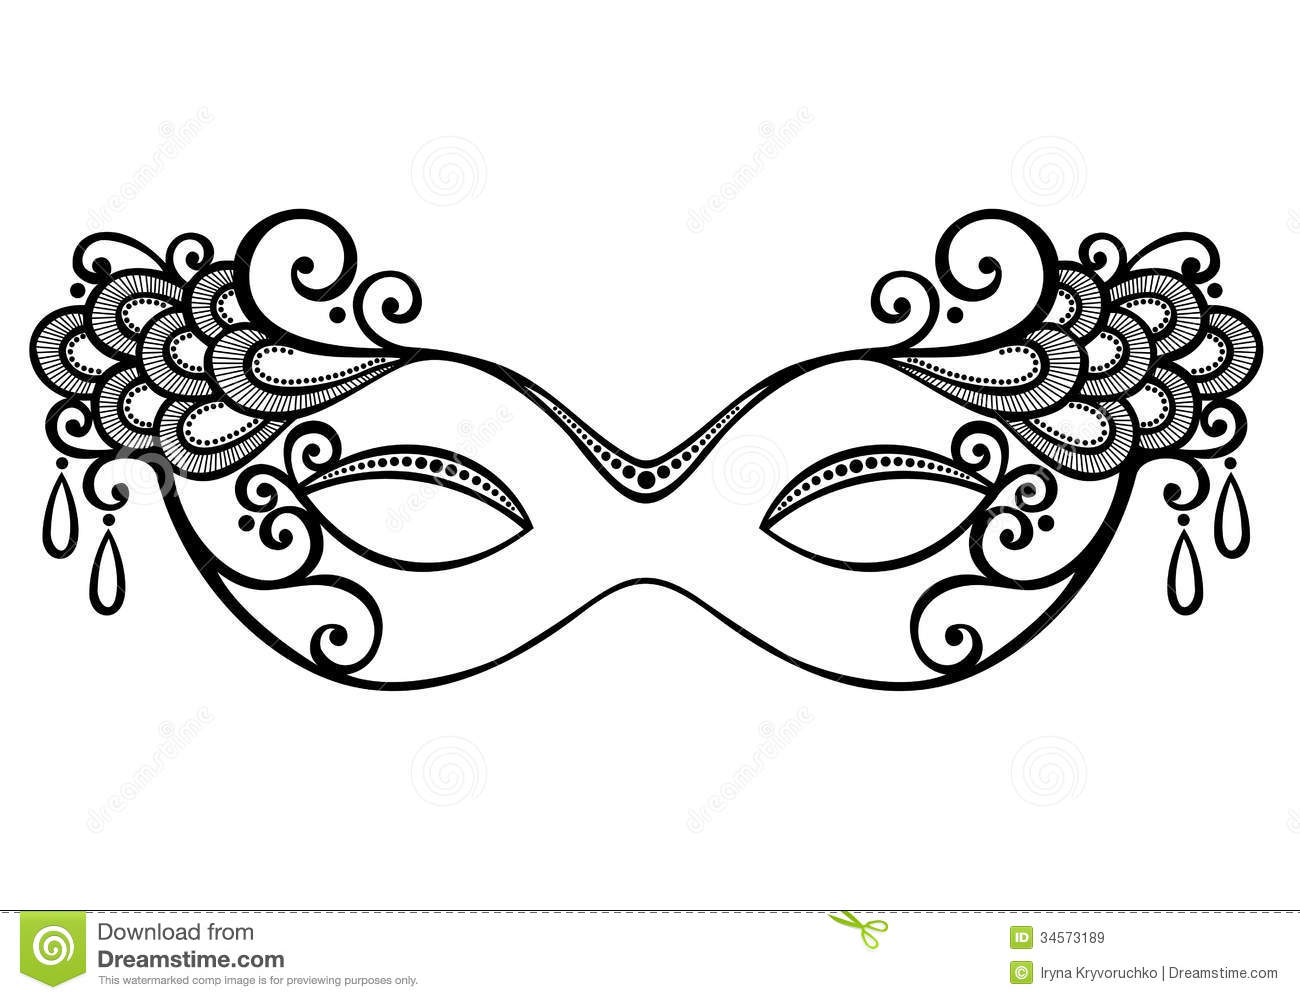 It is a graphic of Gargantuan Masquerade Mask Template Printable